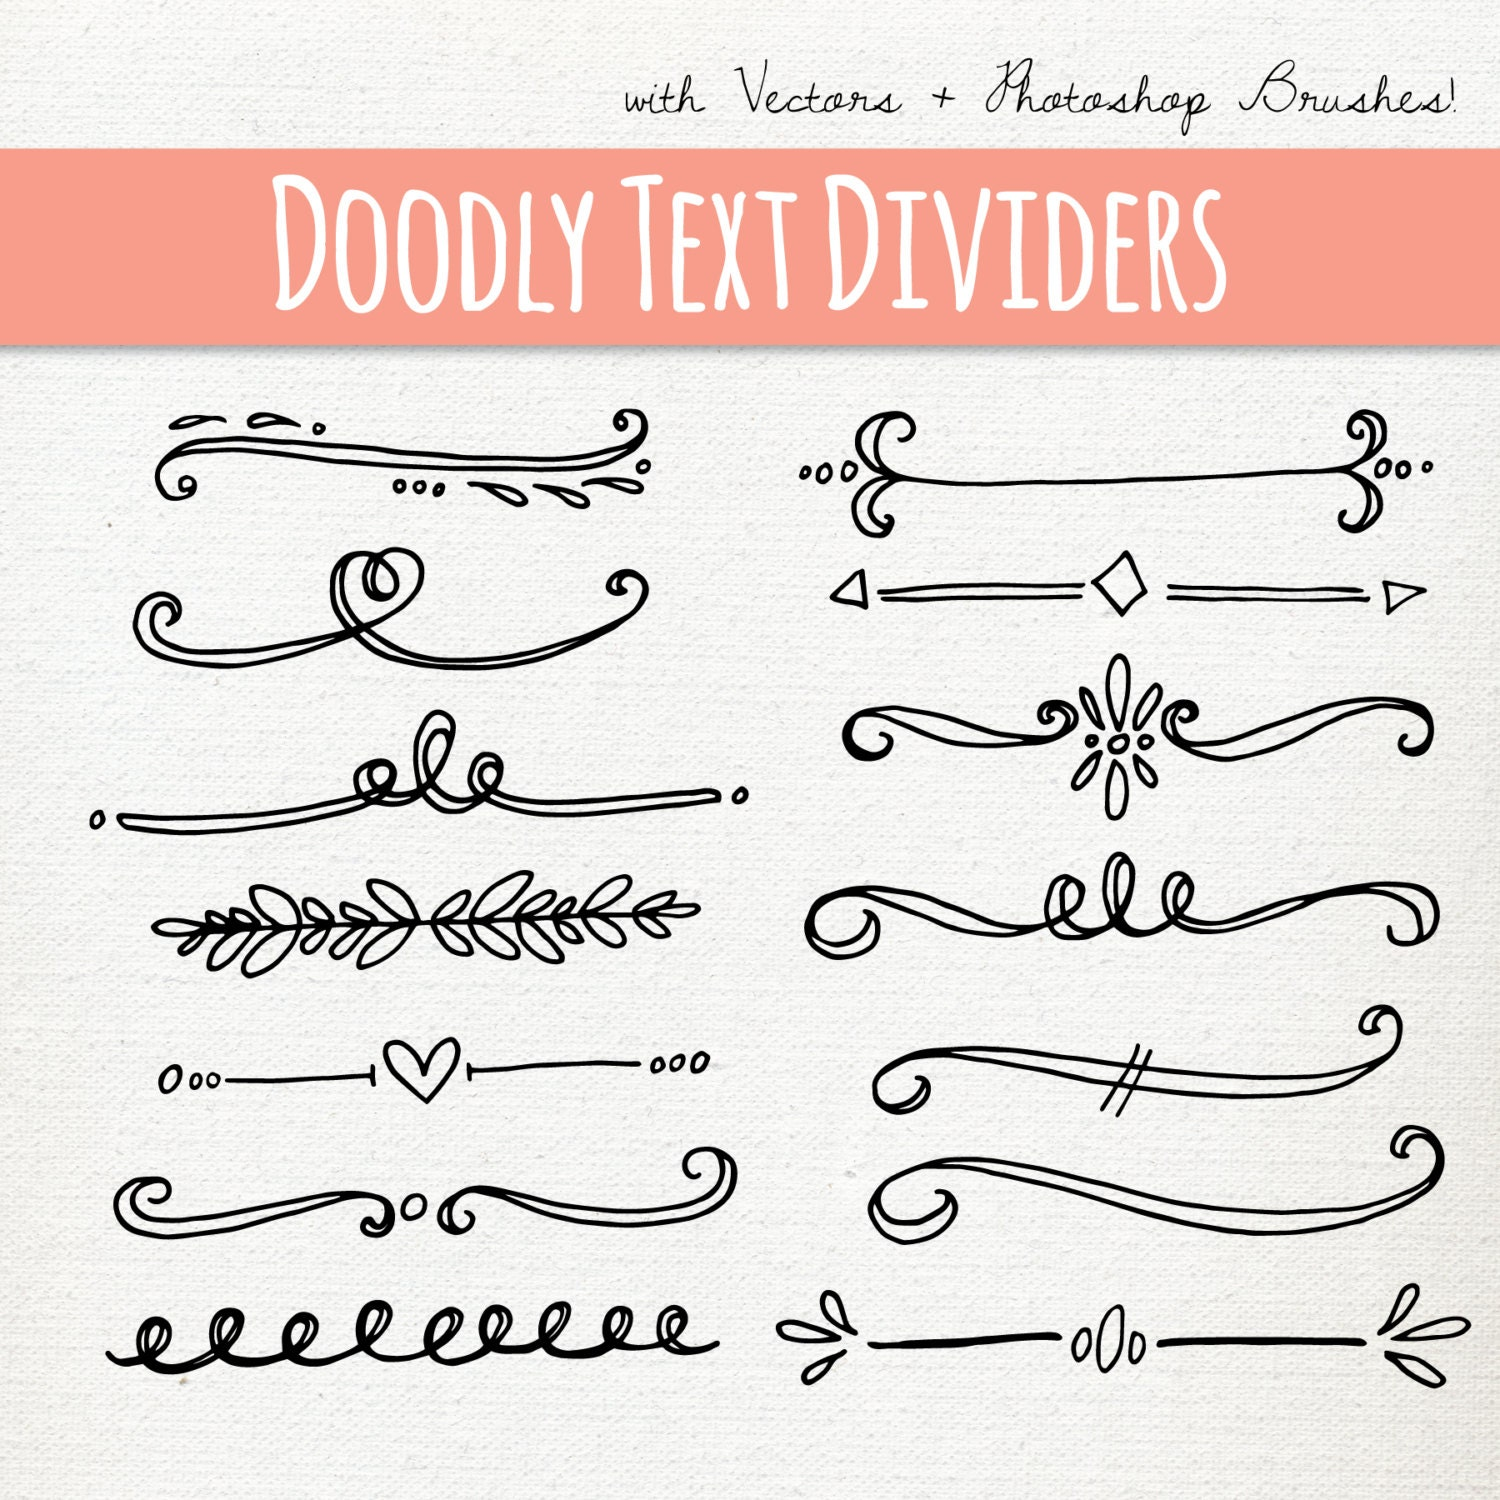 Simple One Line Text Art : Clip art doodly text divider abr photoshop brushes hand